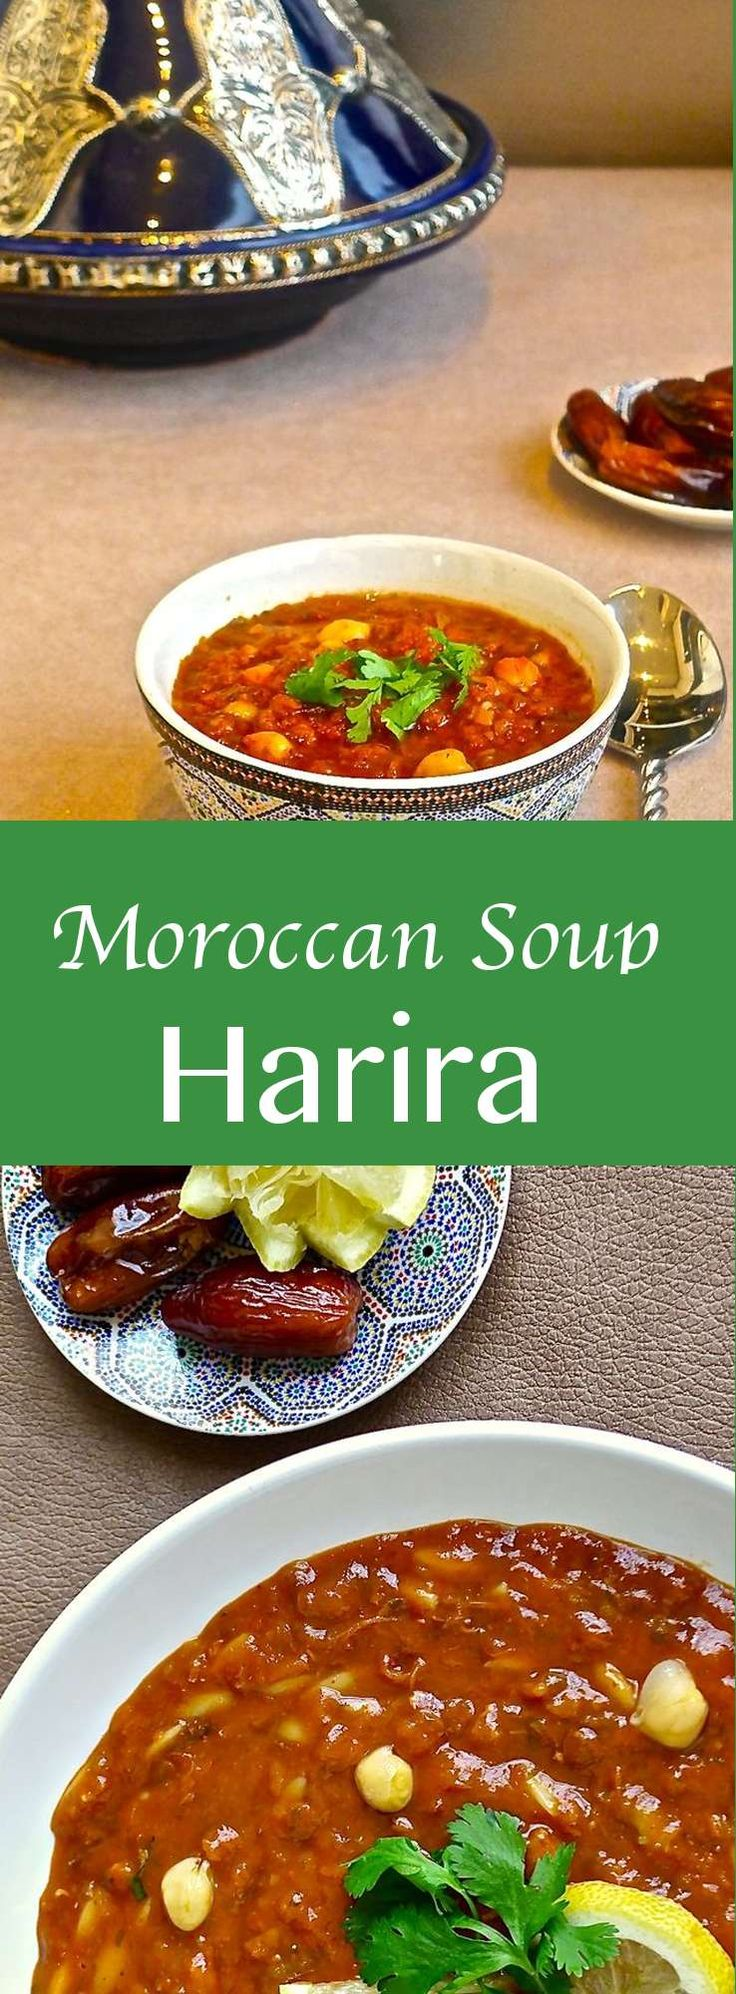 Harira is the traditional soup of Morocco, and more specifically from Fès that is popular as a starter but can also be eaten on its own as a snack. #196flavors